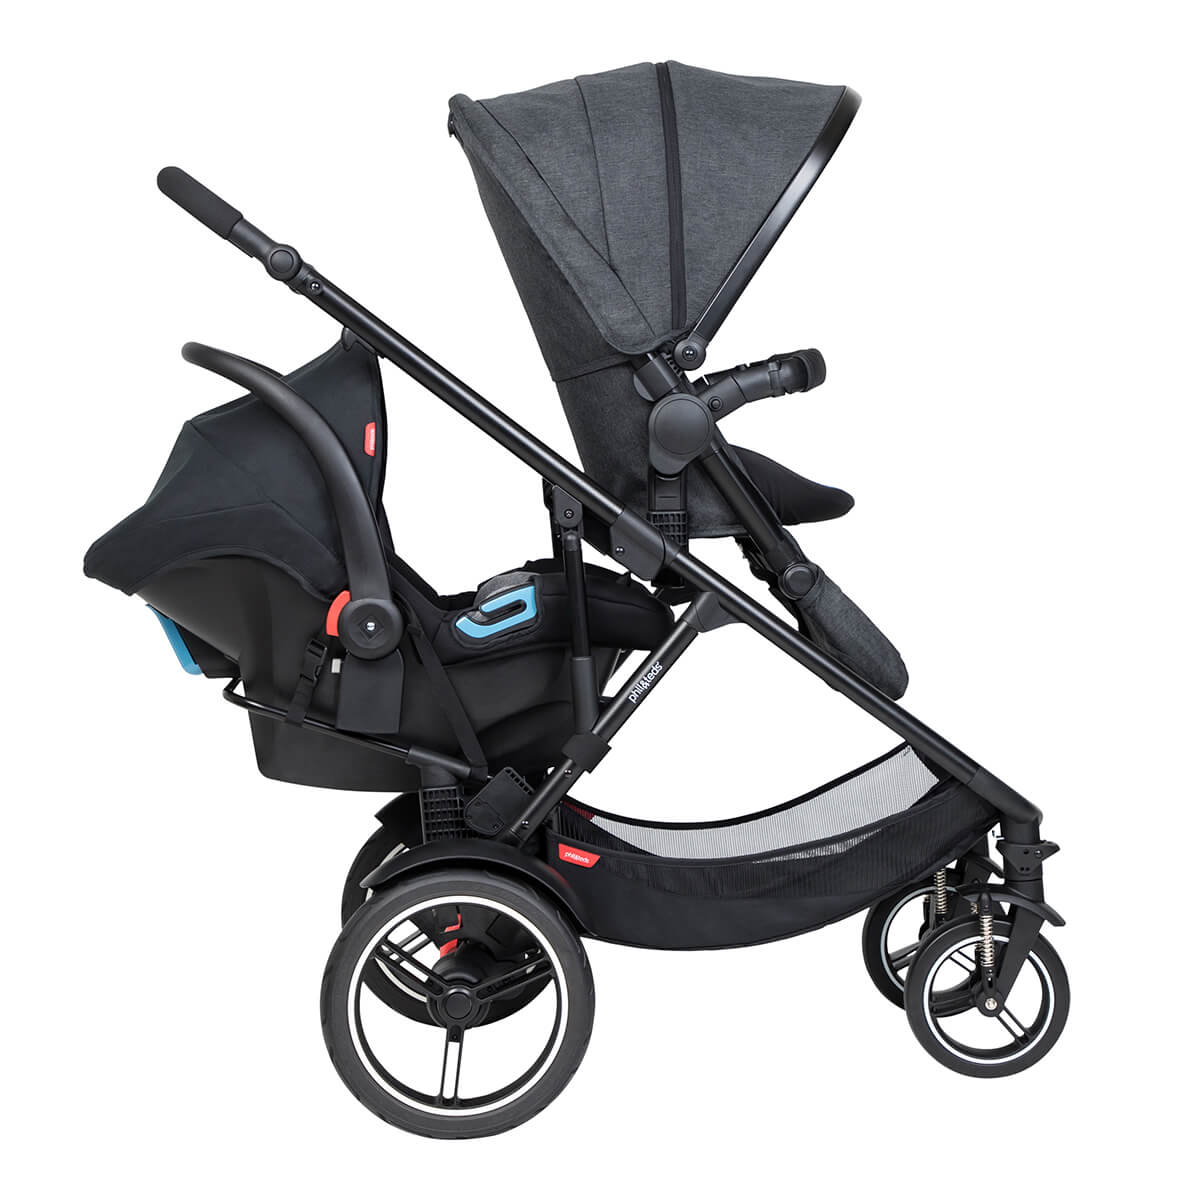 https://cdn.accentuate.io/4417246363682/19437753499826/philteds-voyager-buggy-in-forward-facing-mode-with-travel-system-in-the-rear-v1626482969105.jpg?1200x1200